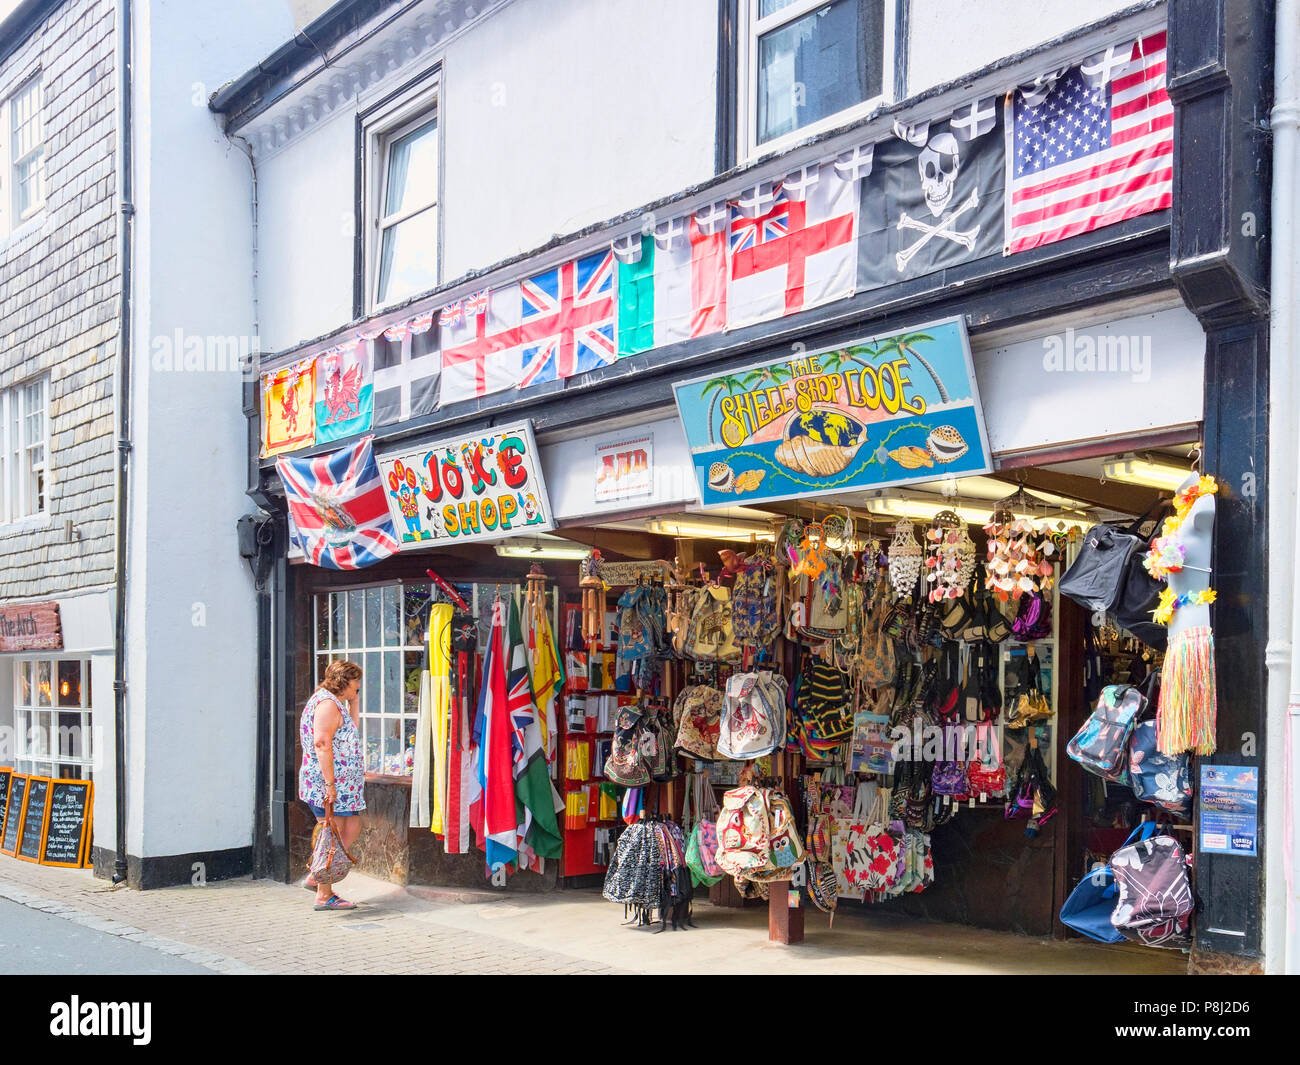 6 June 2018: Looe, Cornwall, UK - Shops in Buller Street, with a Joke Shop and a Shell Shop. Woman looking in window. - Stock Image